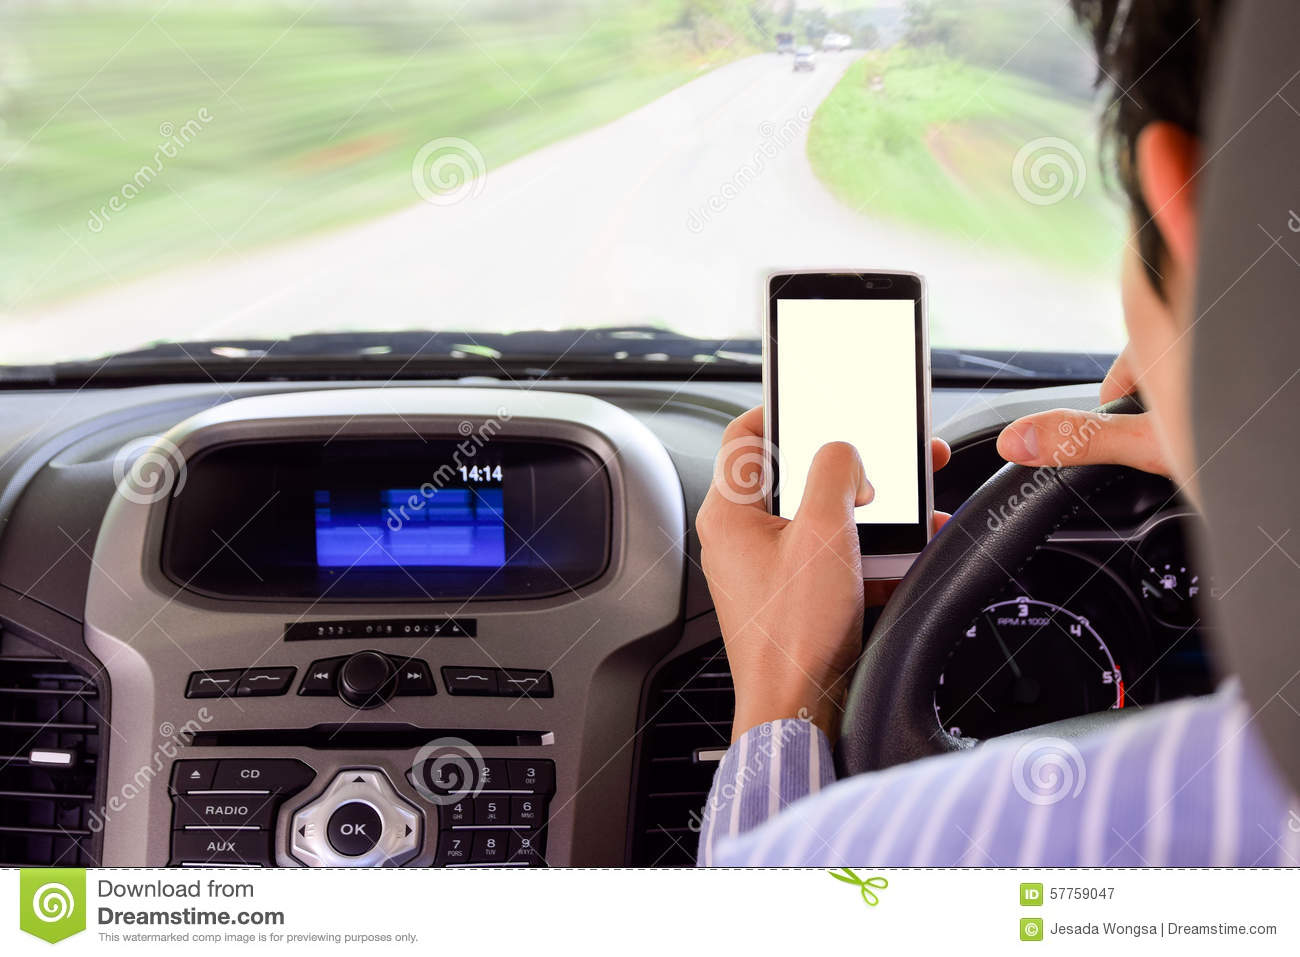 Advise you Cell phone while driving phrase